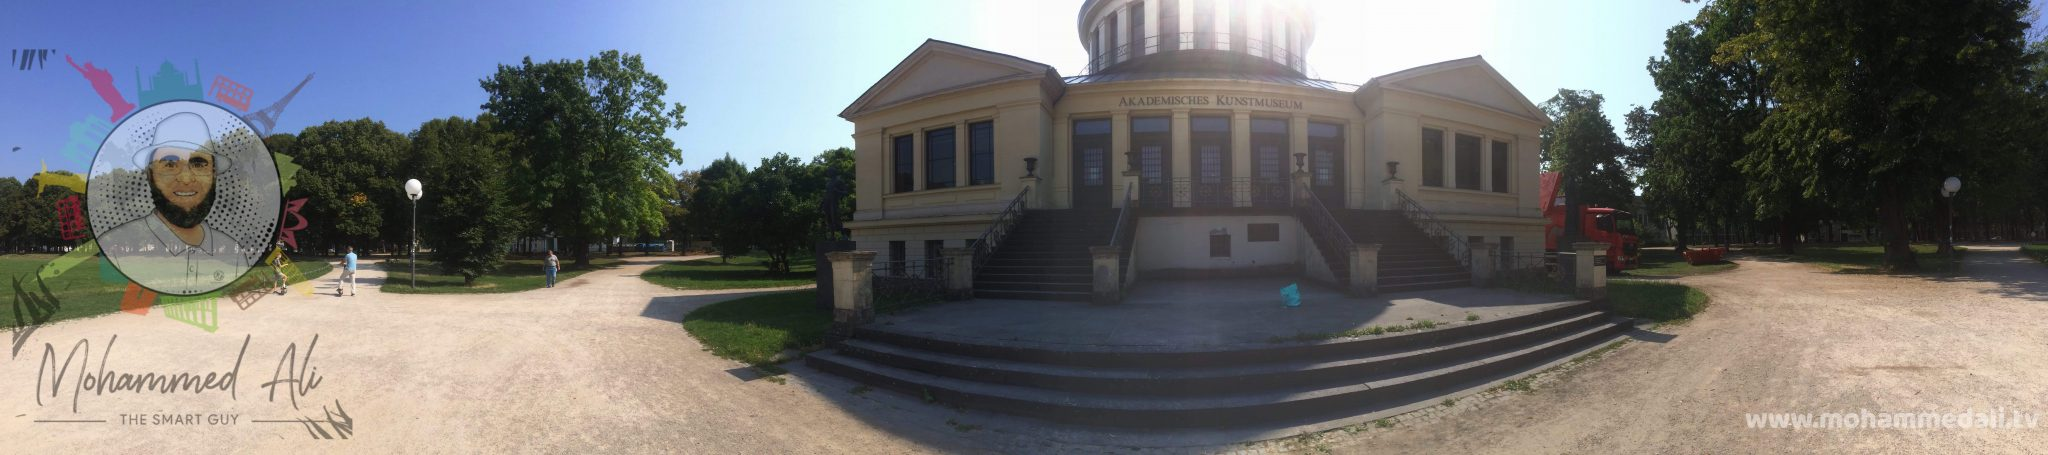 Panoramic view of the academic art museum in Bonn, Germany